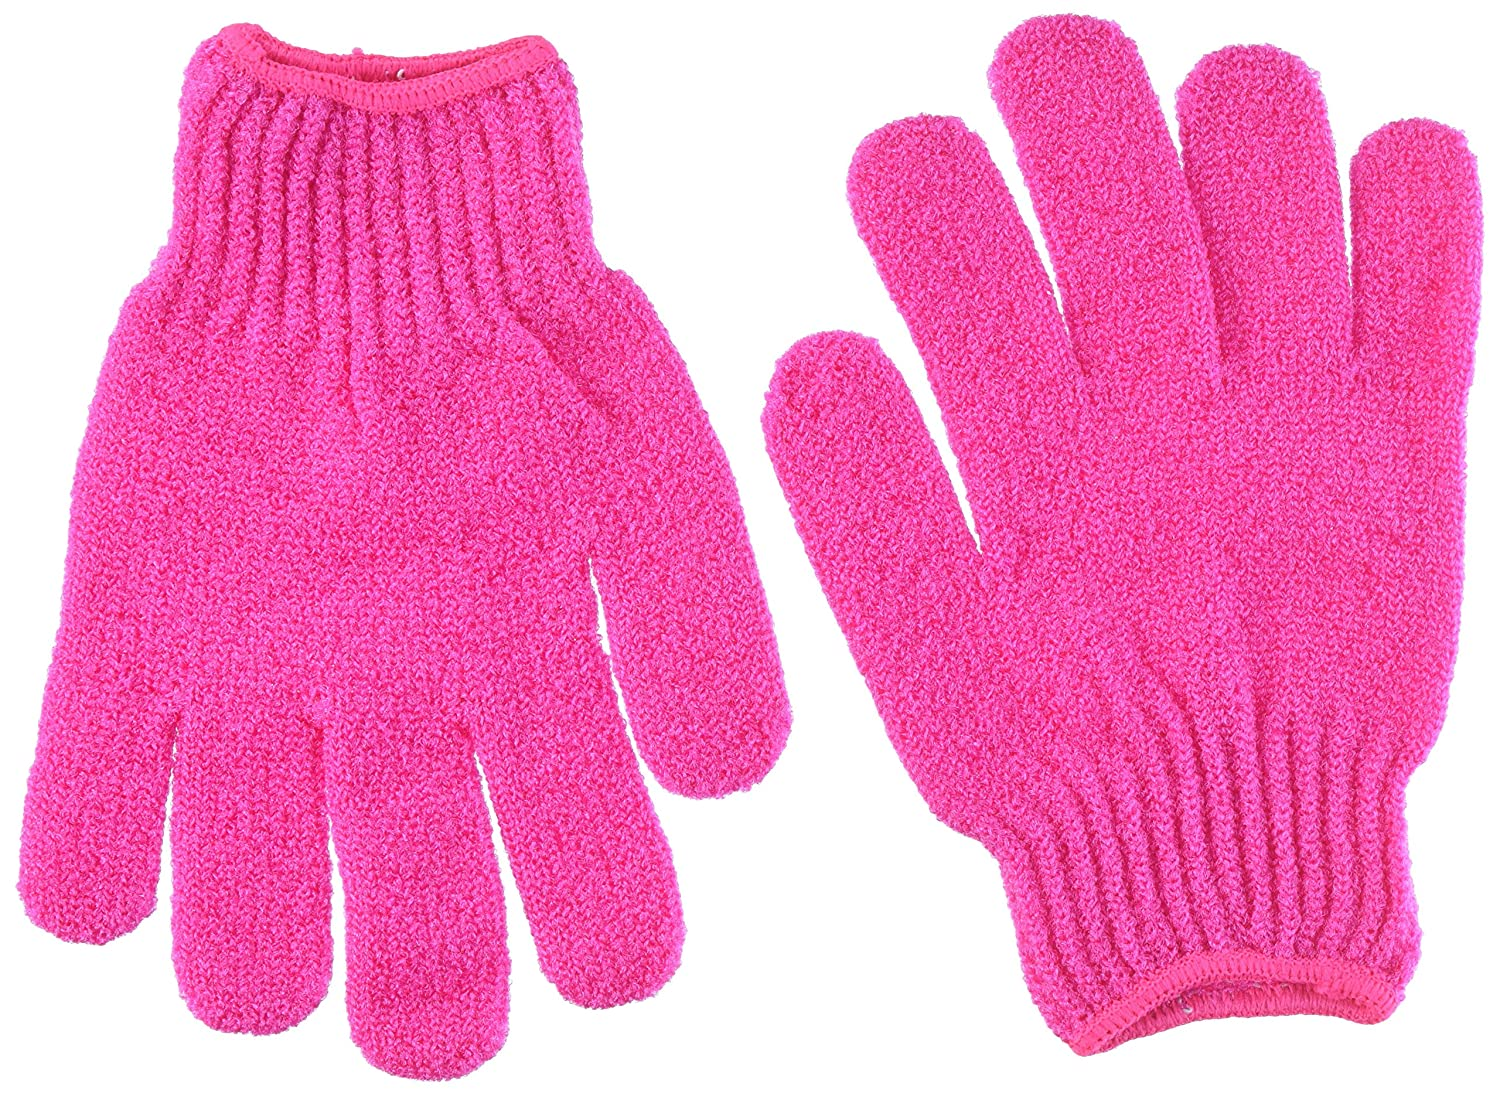 Pink YJYdada 2Pair Bath Scrub mitt Gloves Massage Scrubber Shower wash Skin Spa Shower Tool